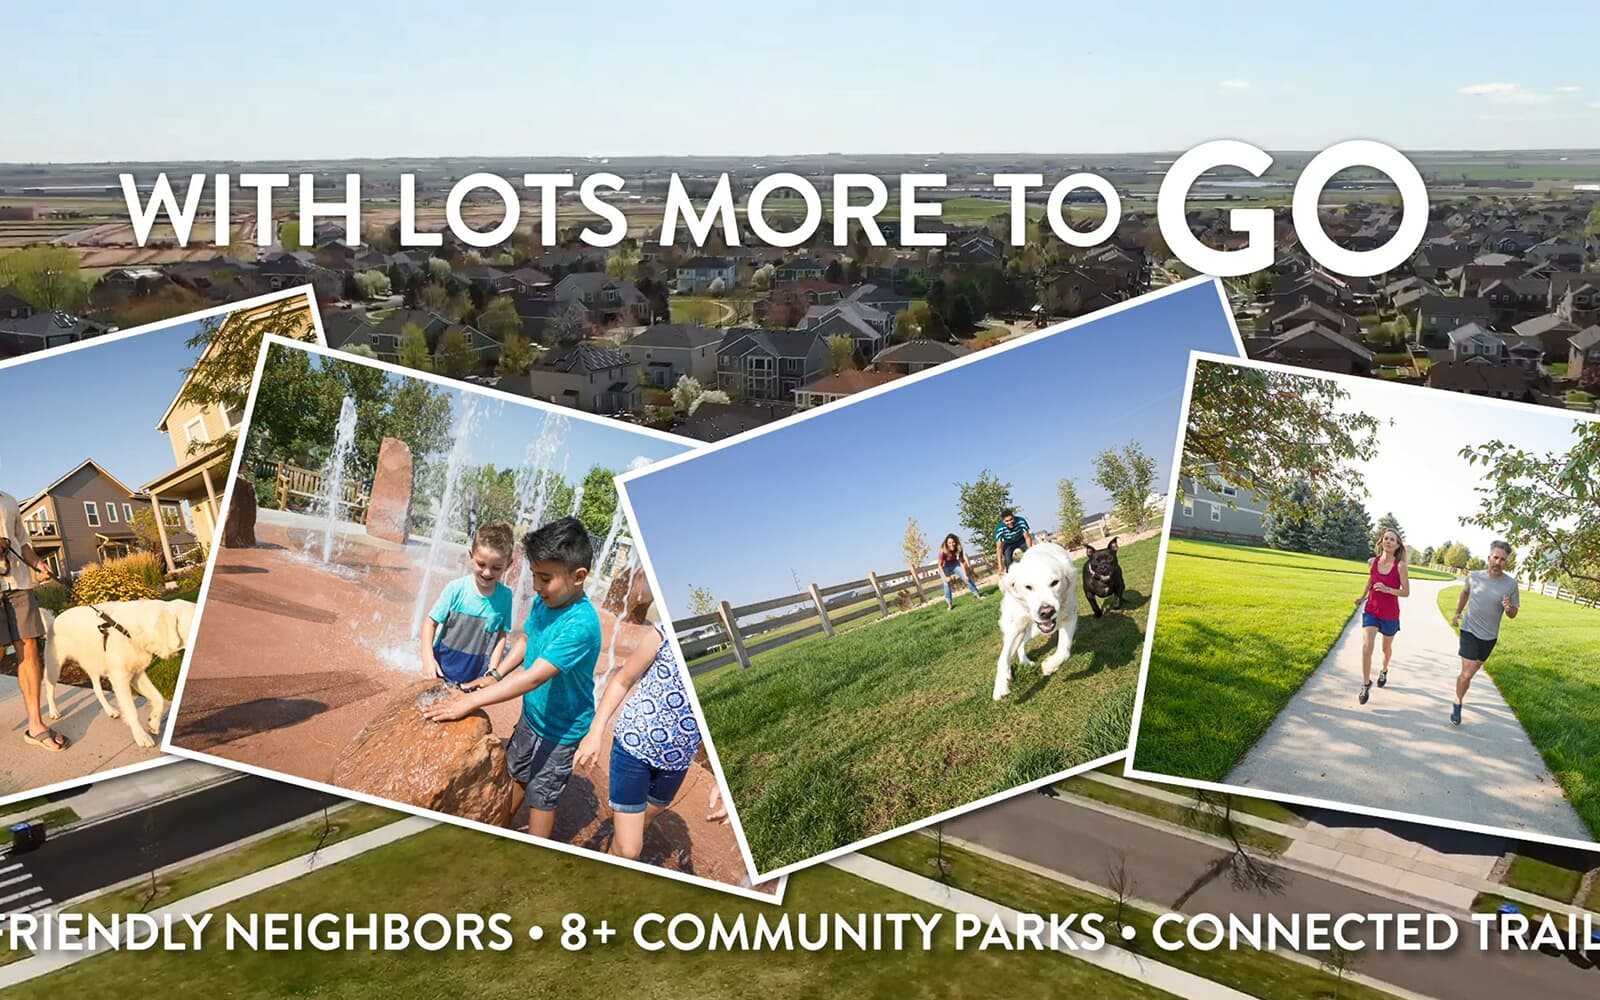 Community - YuMe - Ad - Video - Cover - Image - Brighton - Crossings - Denver - Colorado